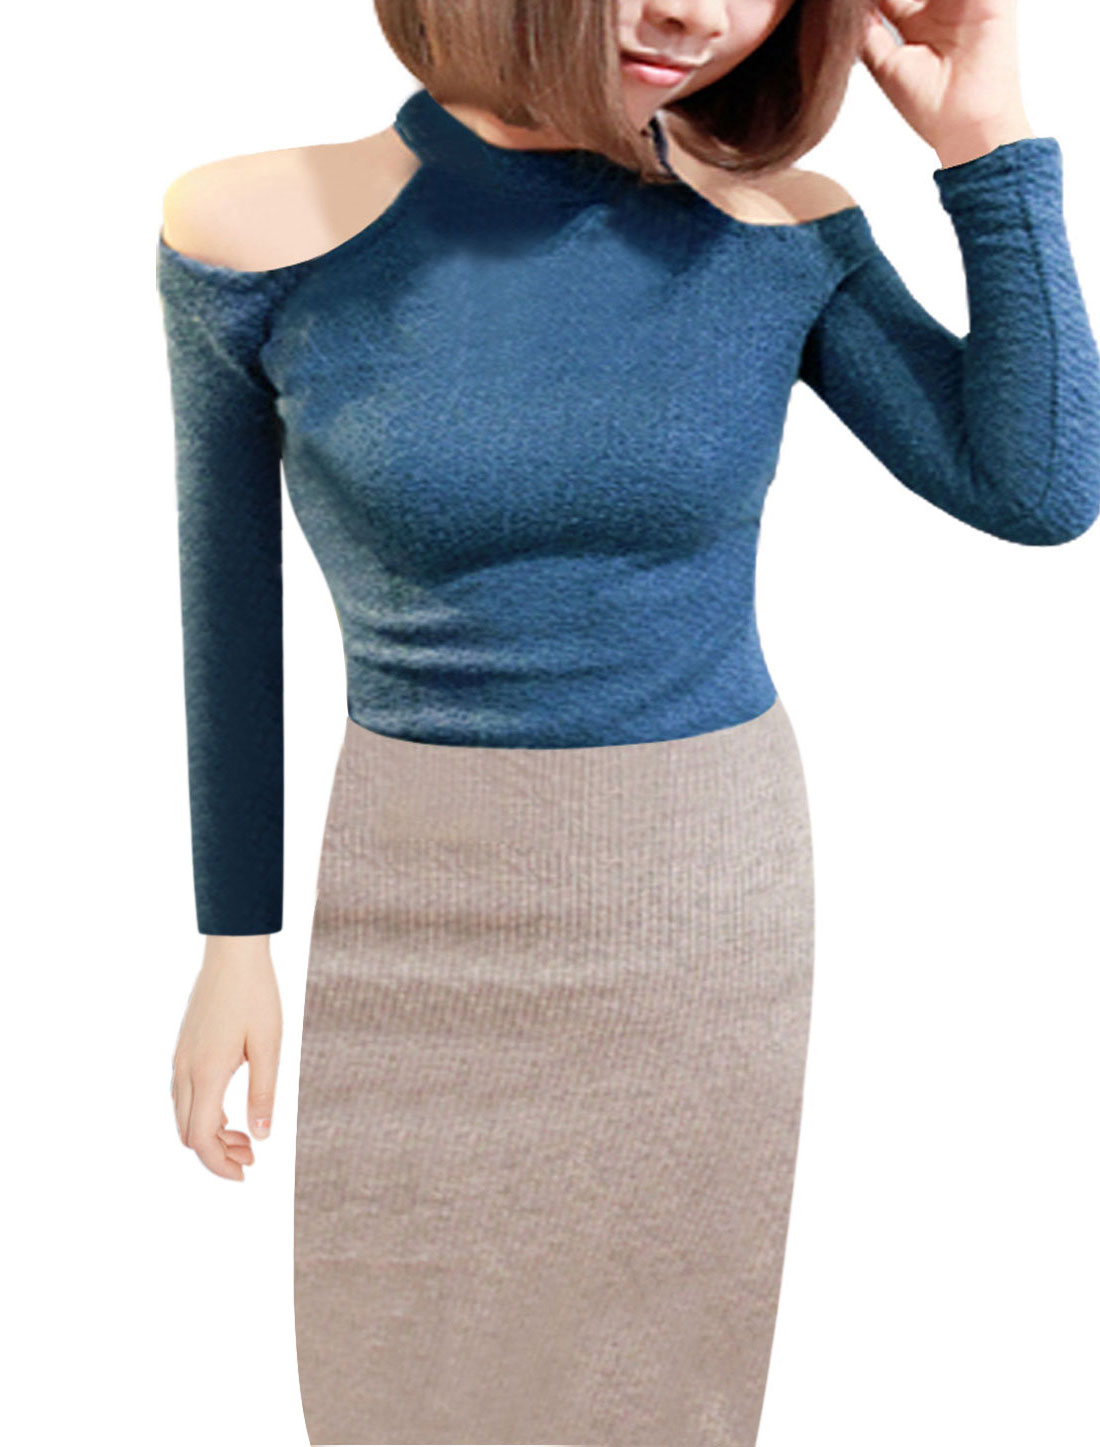 Ladies Stretchy Knitted Mock Neck Long Sleeve Slim Pullover Tops Solid Blue XS